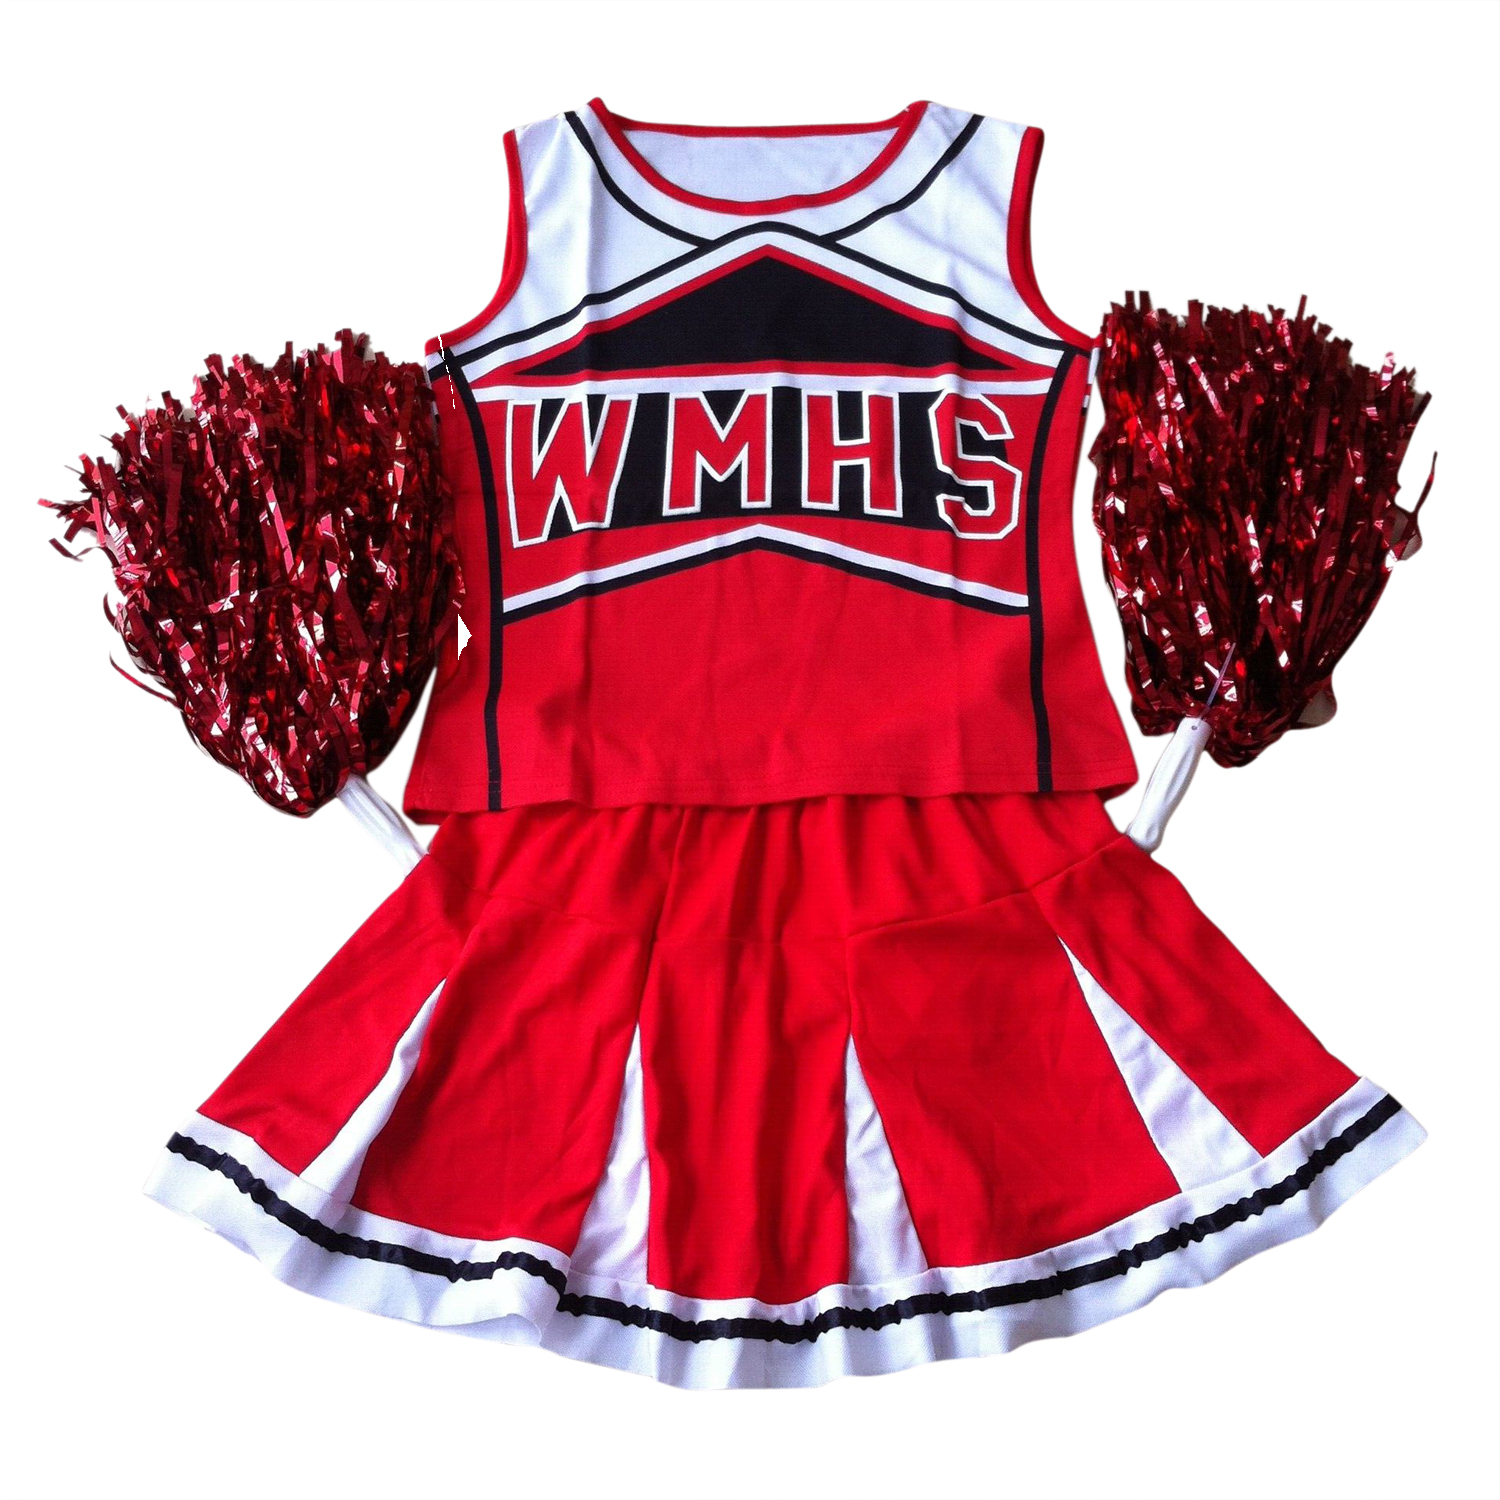 Tank top Petticoat Pom cheer leaders L (38-40) 2 piece suit new red costume